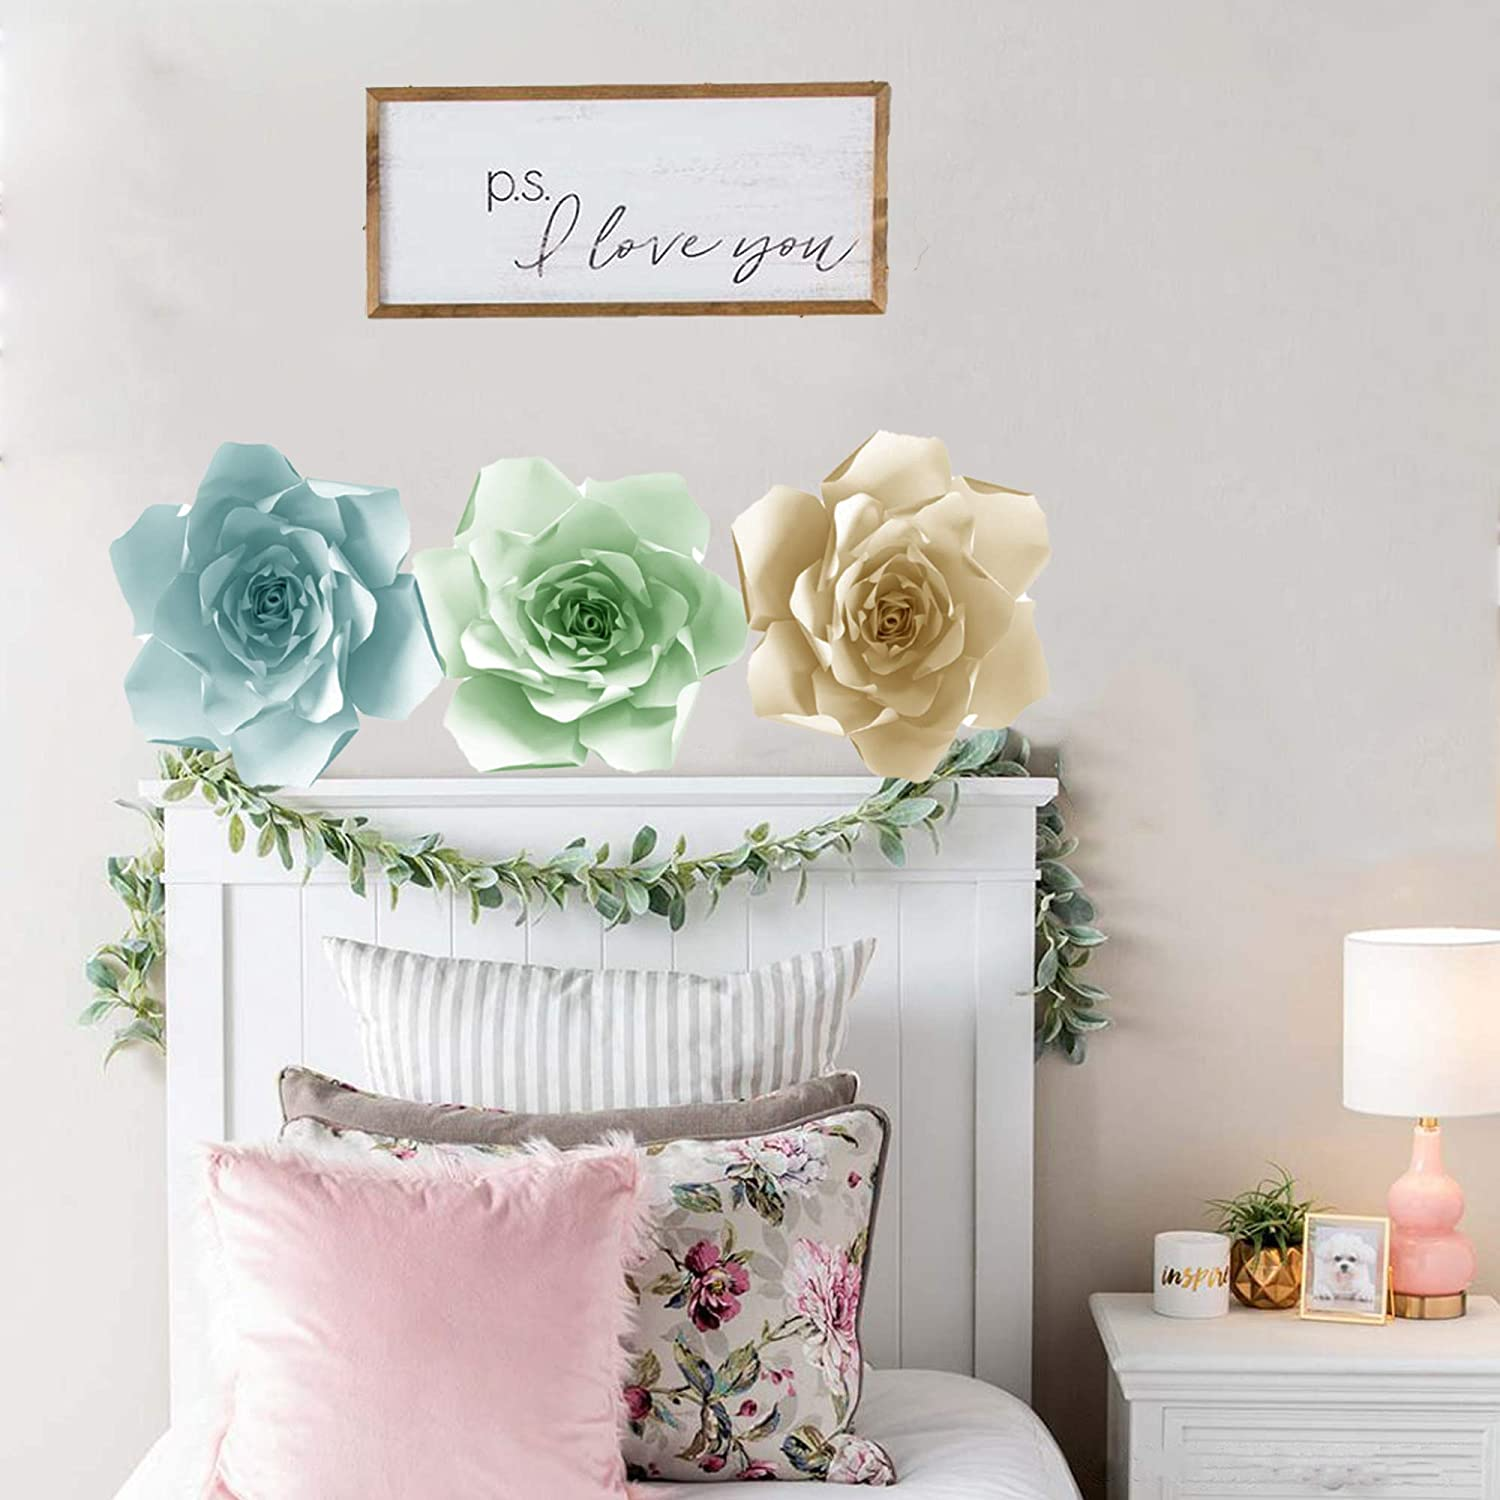 Make Unlimited Flowers Paper Flowers Decorations for Wall Paper Flower Template Kit DIY Do It Yourself Make Your Own Paper Flowers Gardenia Make All Sizes